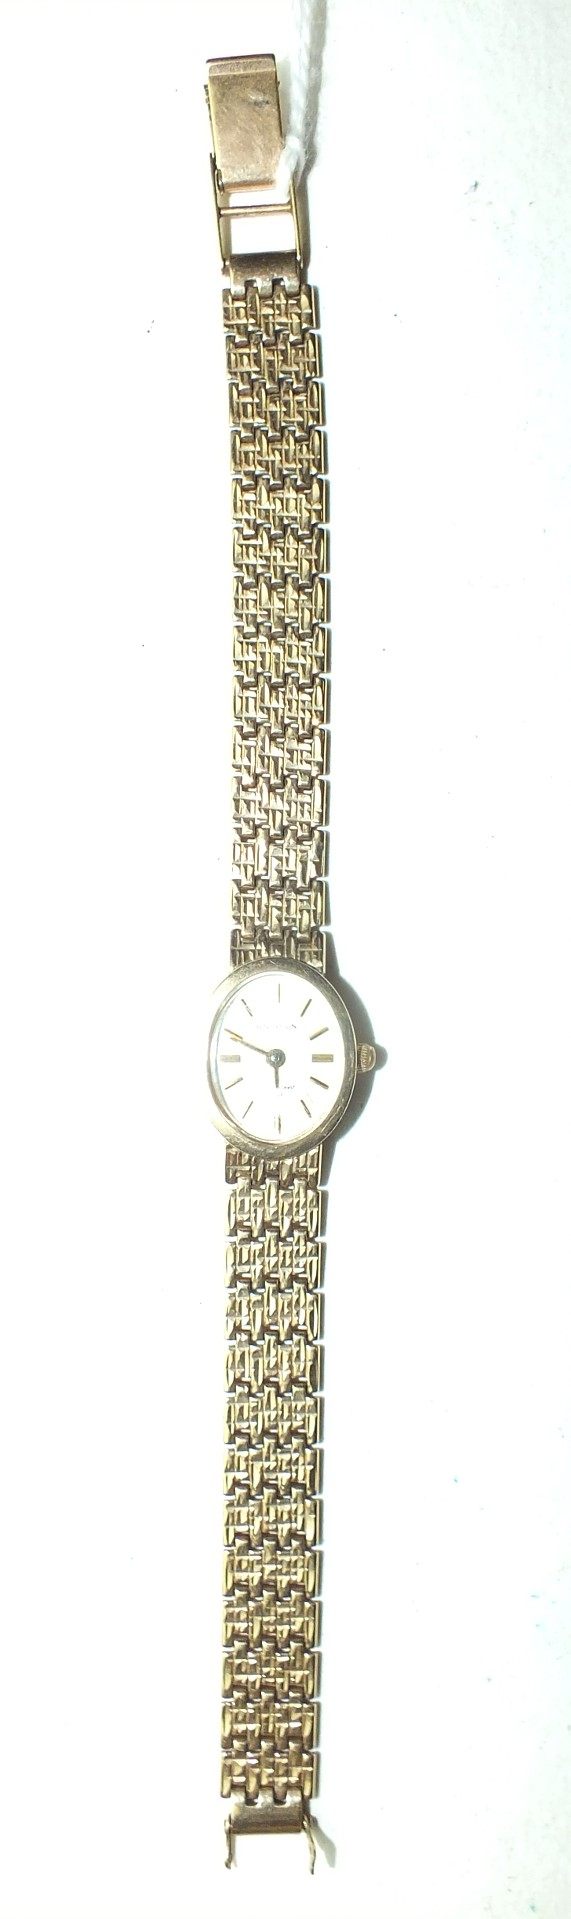 Lot 253 - Sovereign, a ladies 9ct gold wrist watch on 9ct gold bracelet, (clasp a/f), 14.6g, (battery